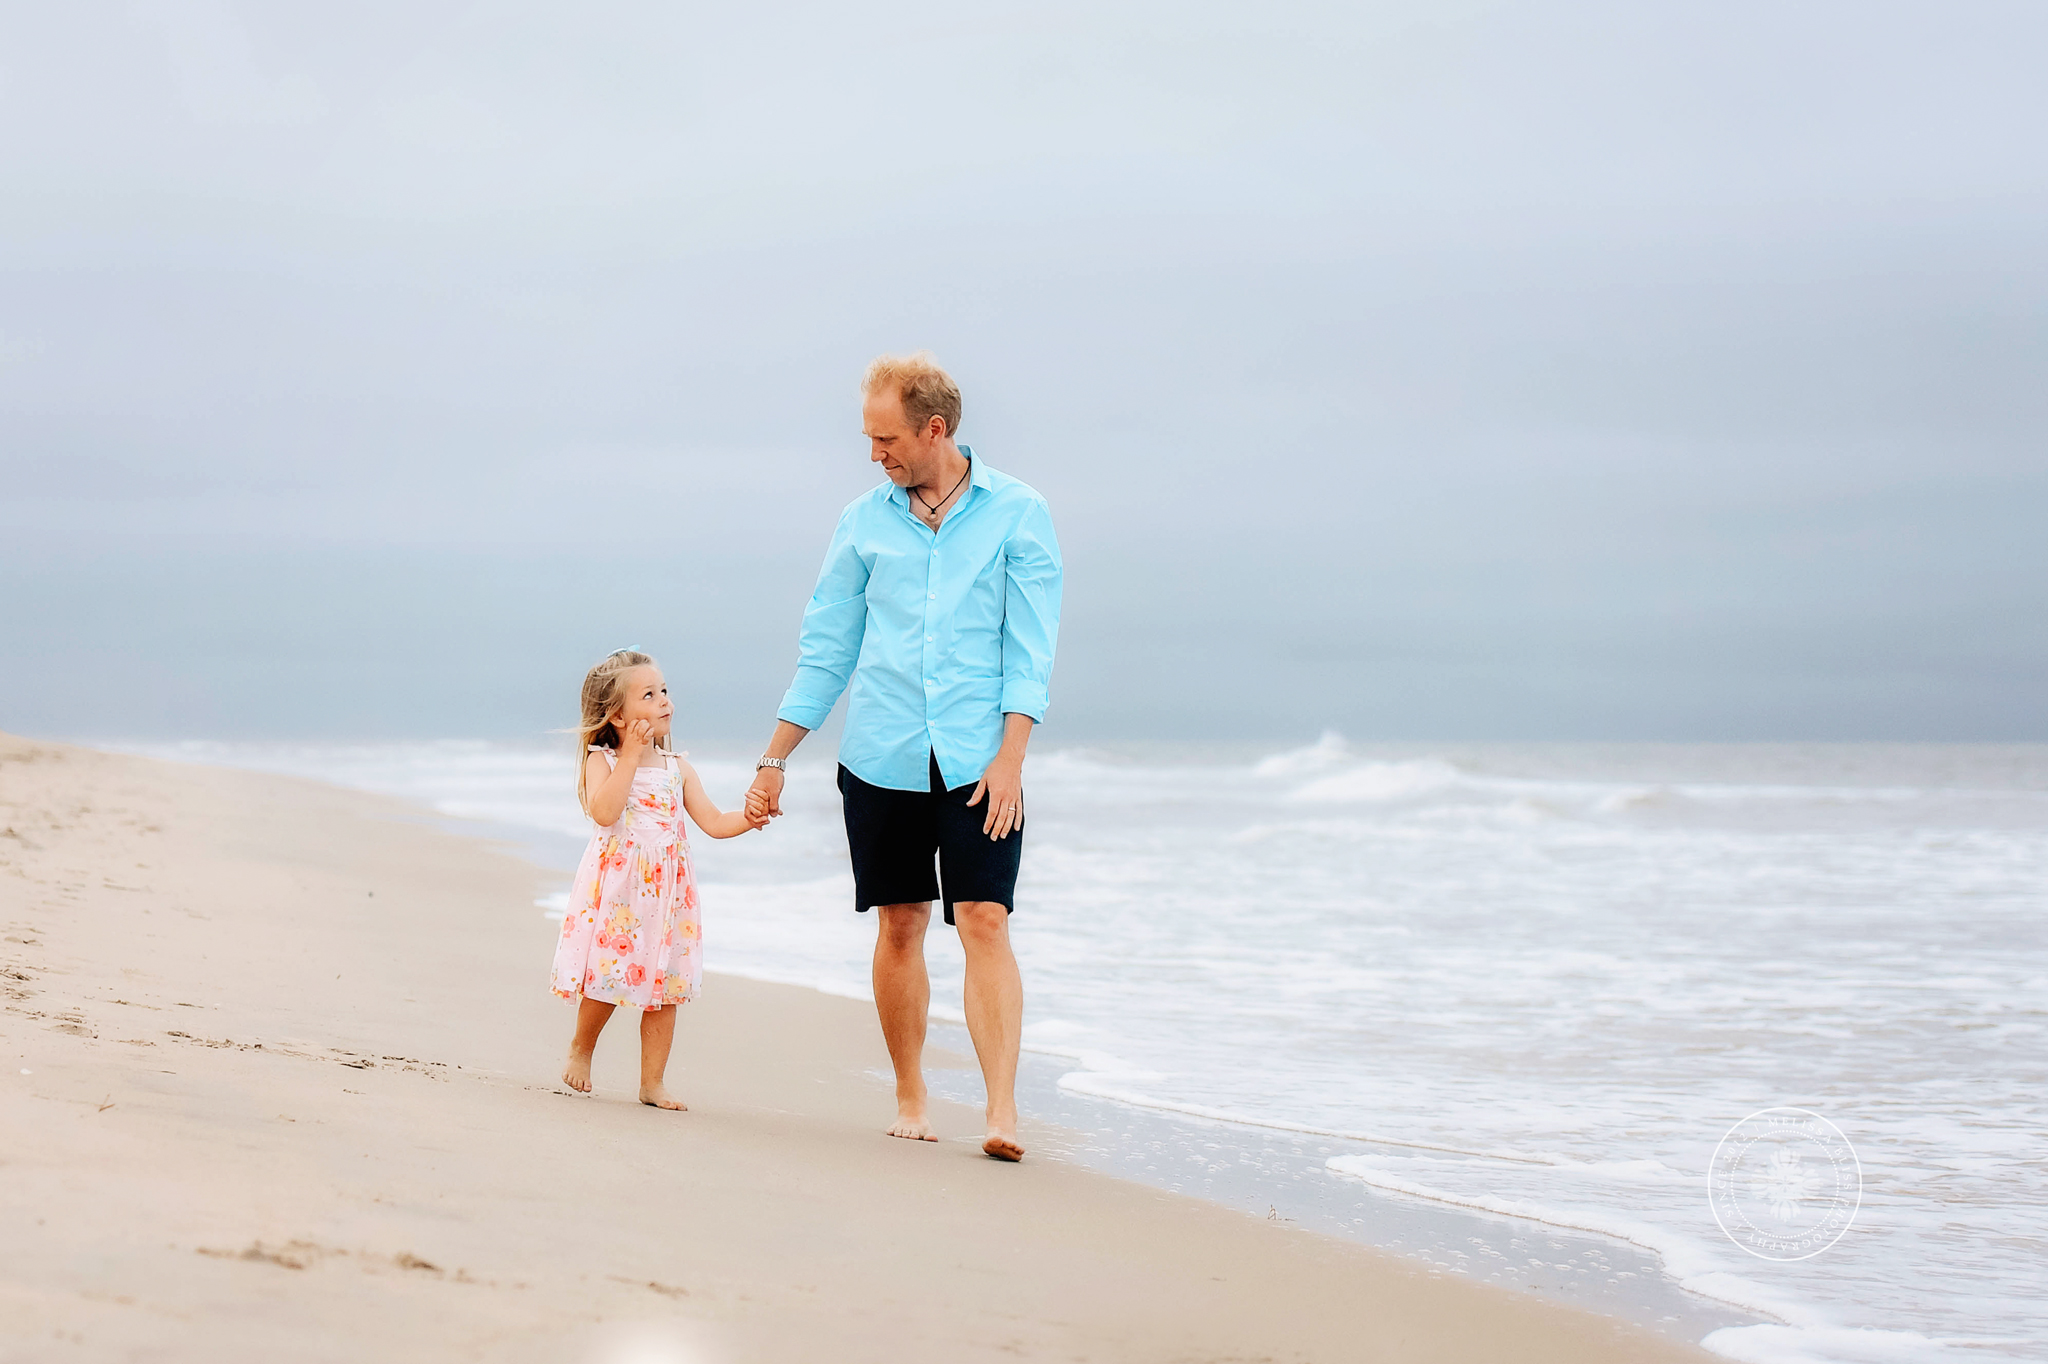 melissa-bliss-photography-hampton-roads-family-photographers-beach-session-dad-and-daughter.jpg